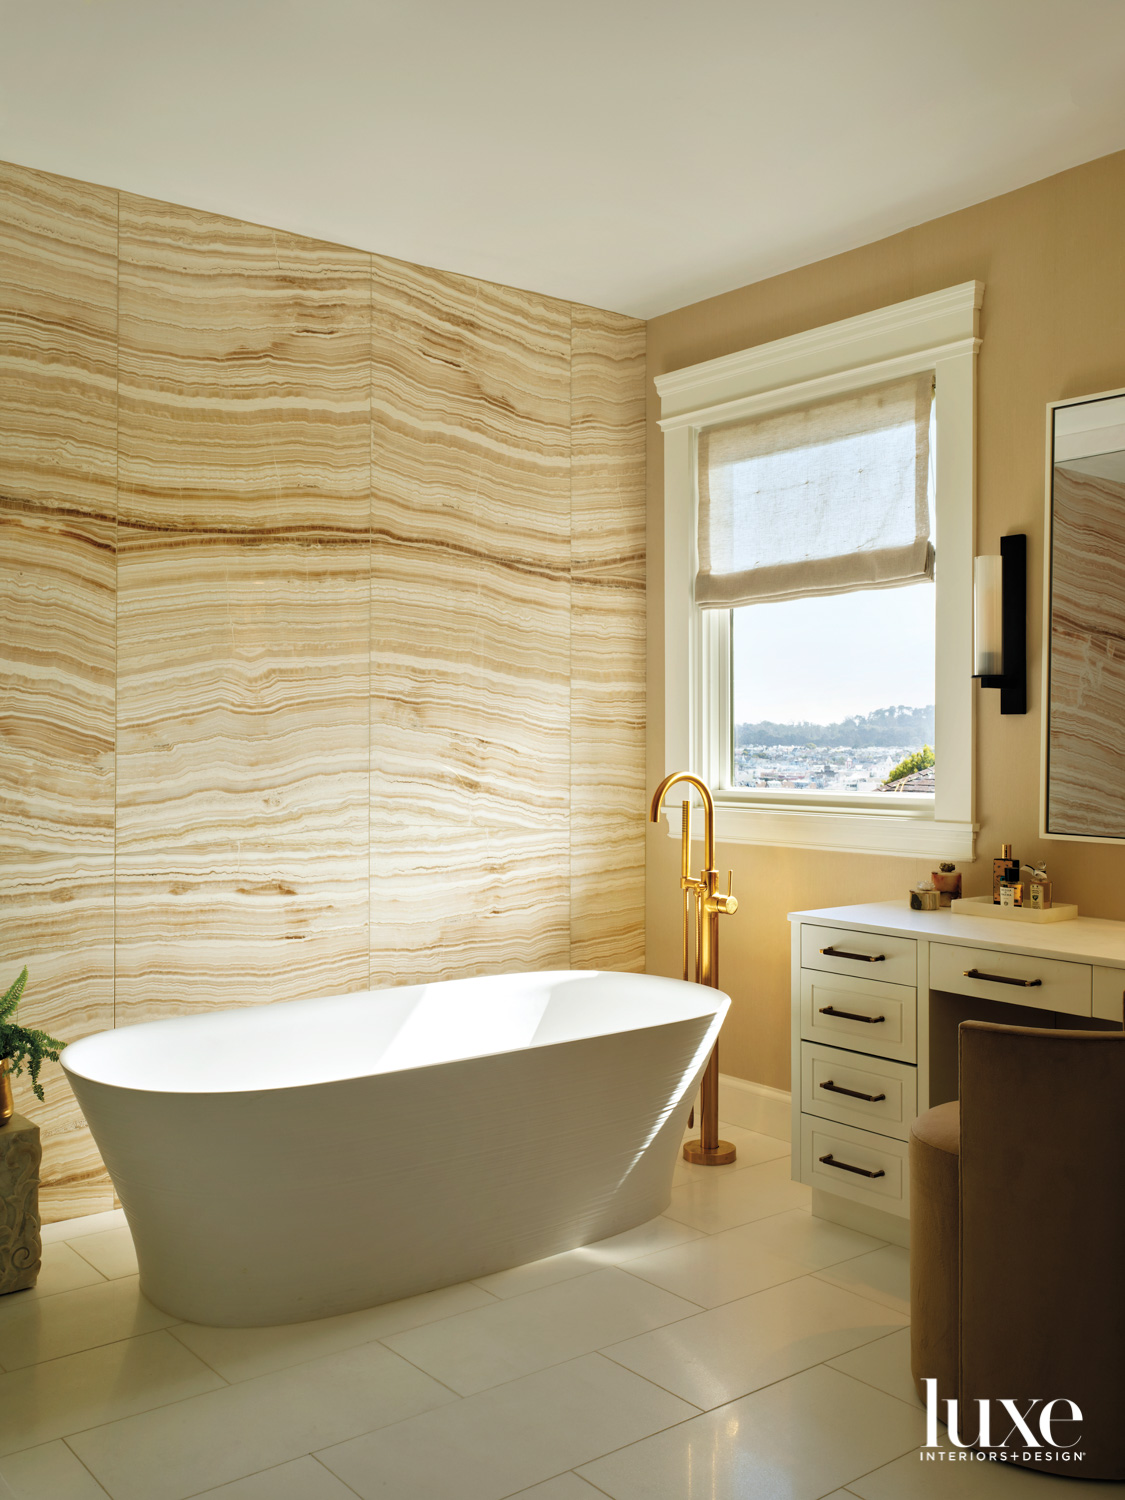 A primary bathroom features stone walls with a strong pattern.